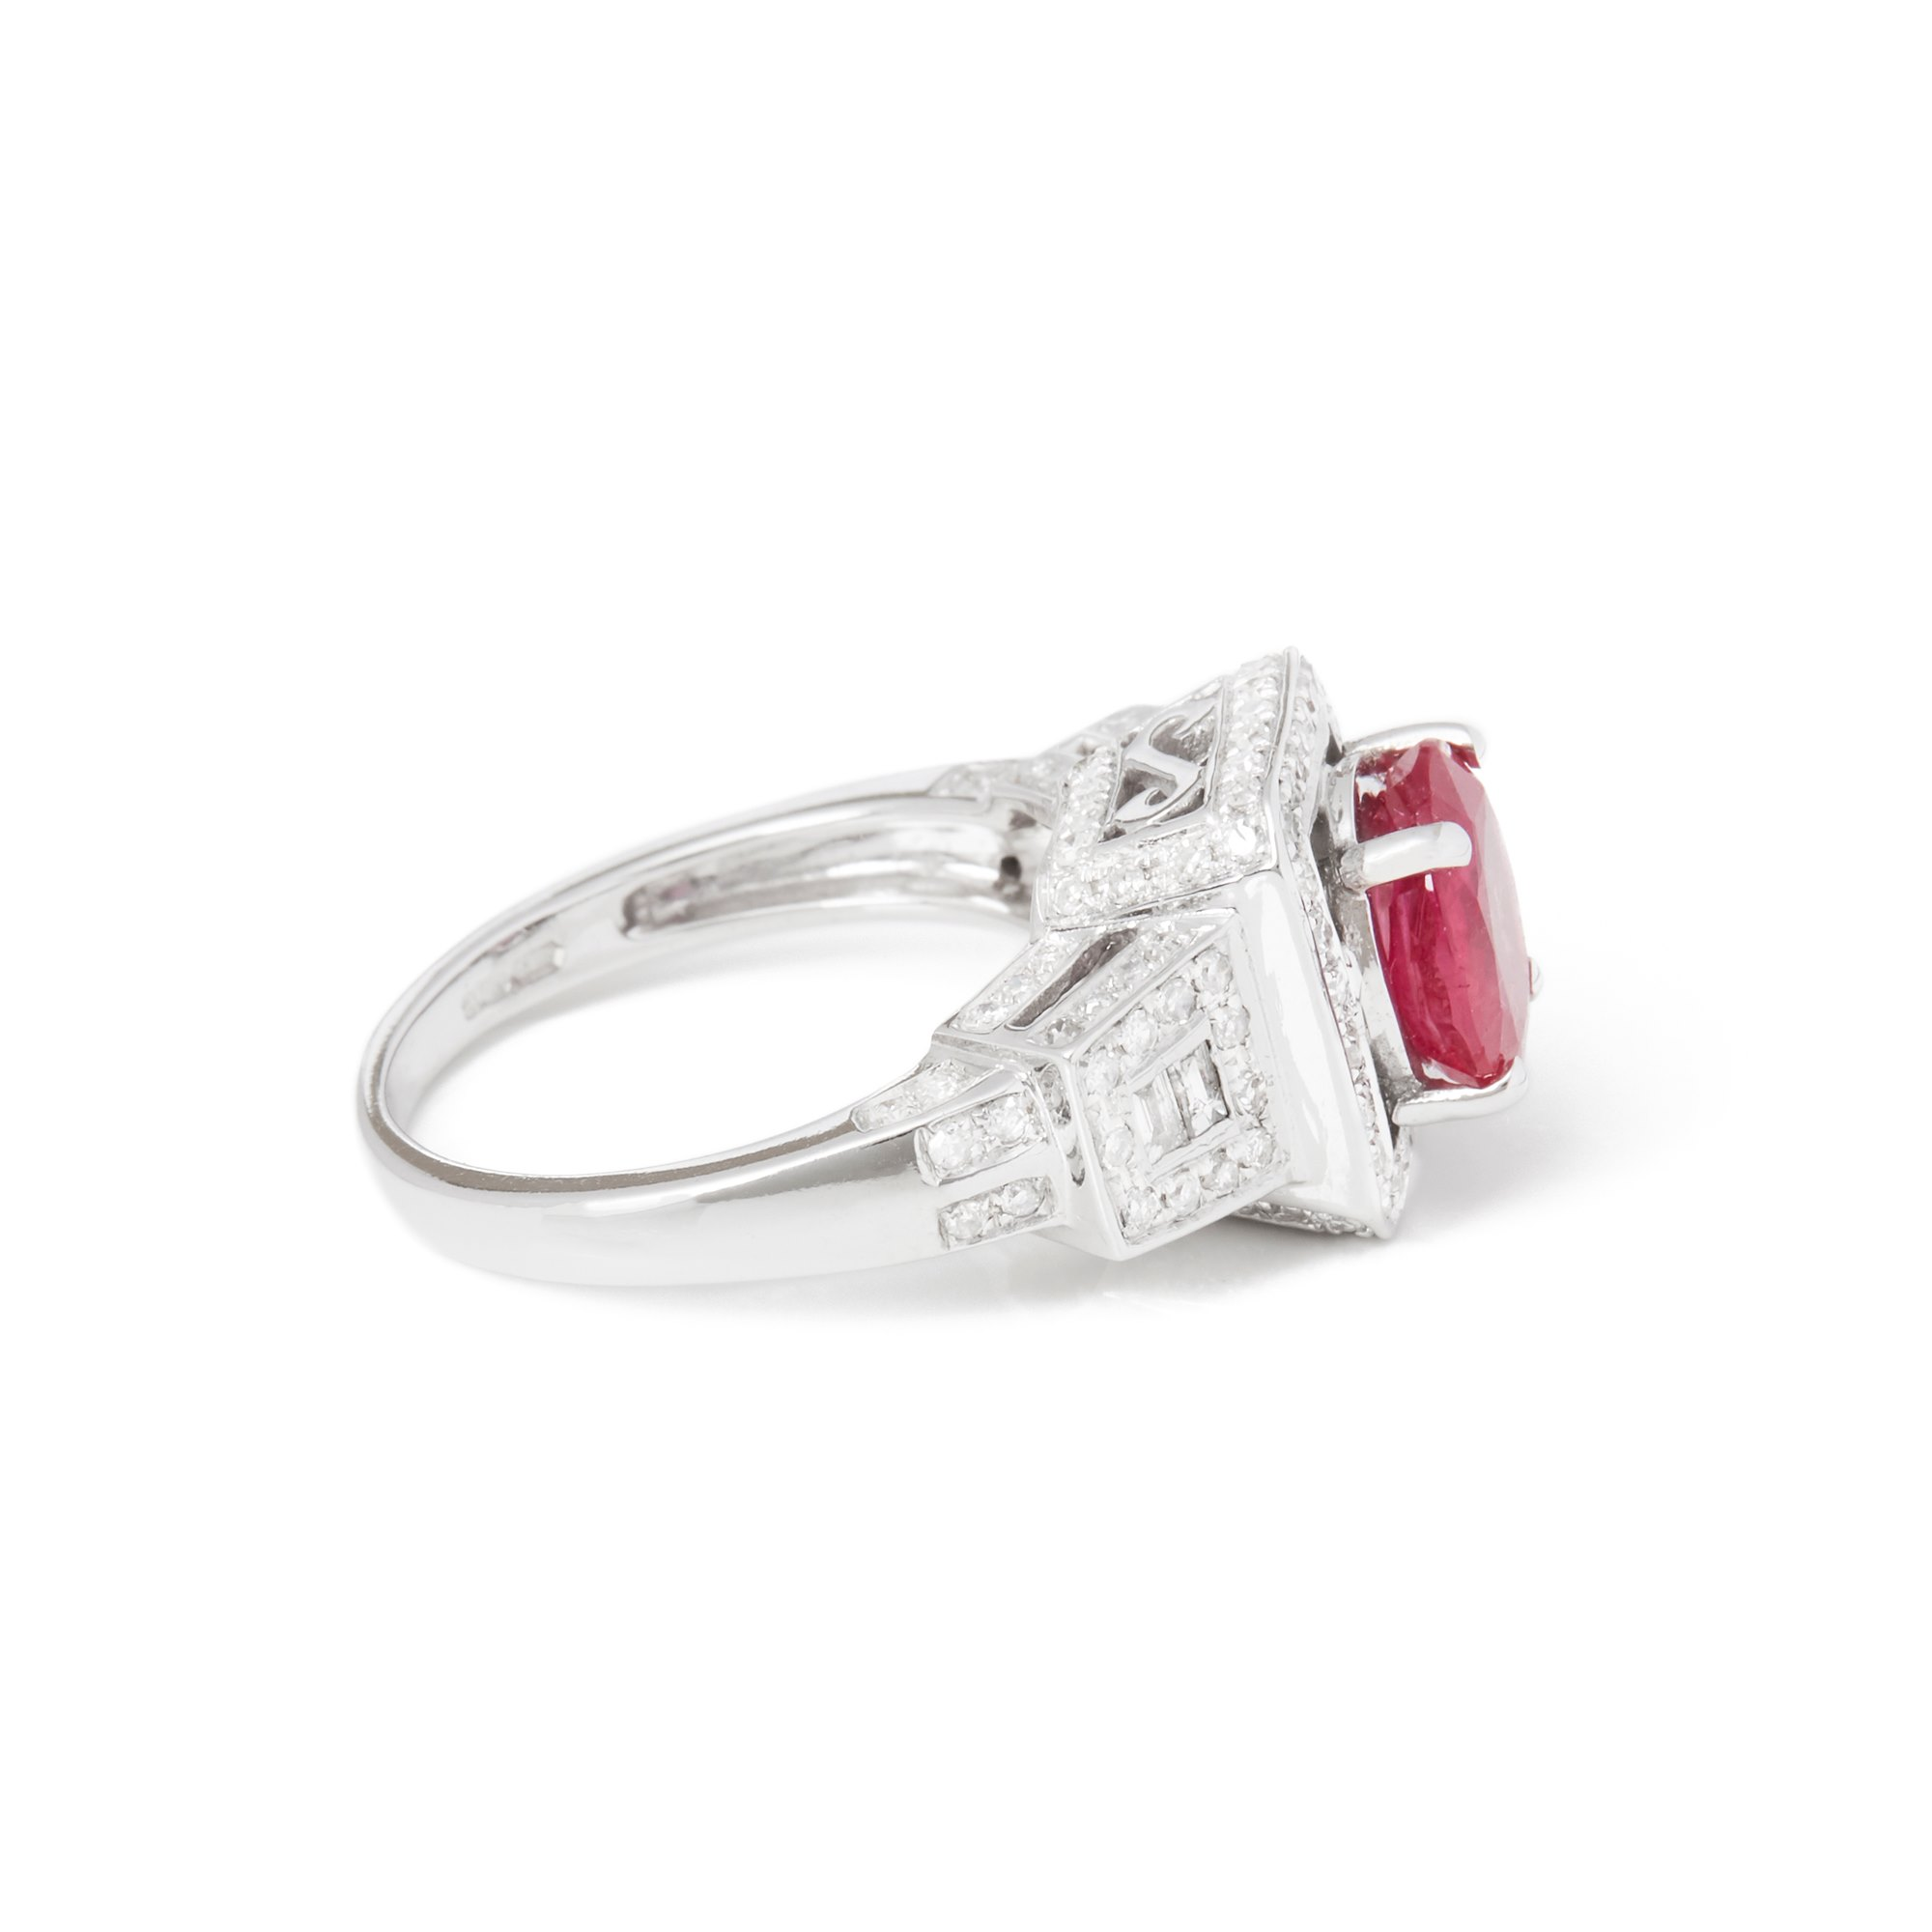 David Jerome Certified 2.38ct Untreated Oval Cut Ruby and Diamond Ring